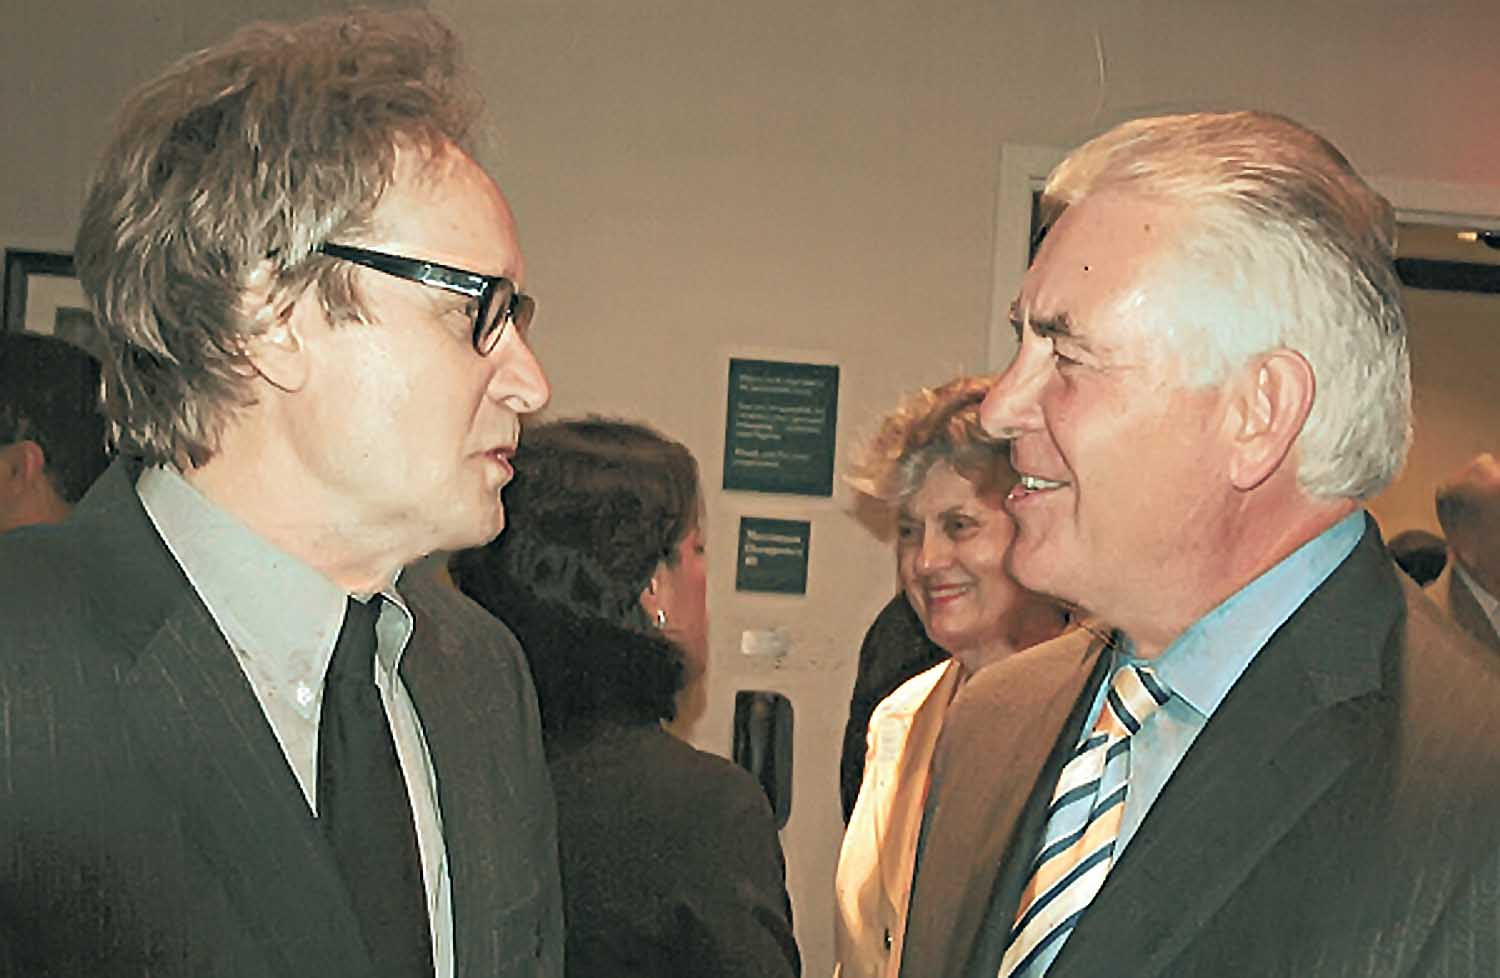 ExxonMobil Chairman and CEO Rex Tillerson (right), no doubt deflecting another of Glenn Hunter's annoying requests for an interview.